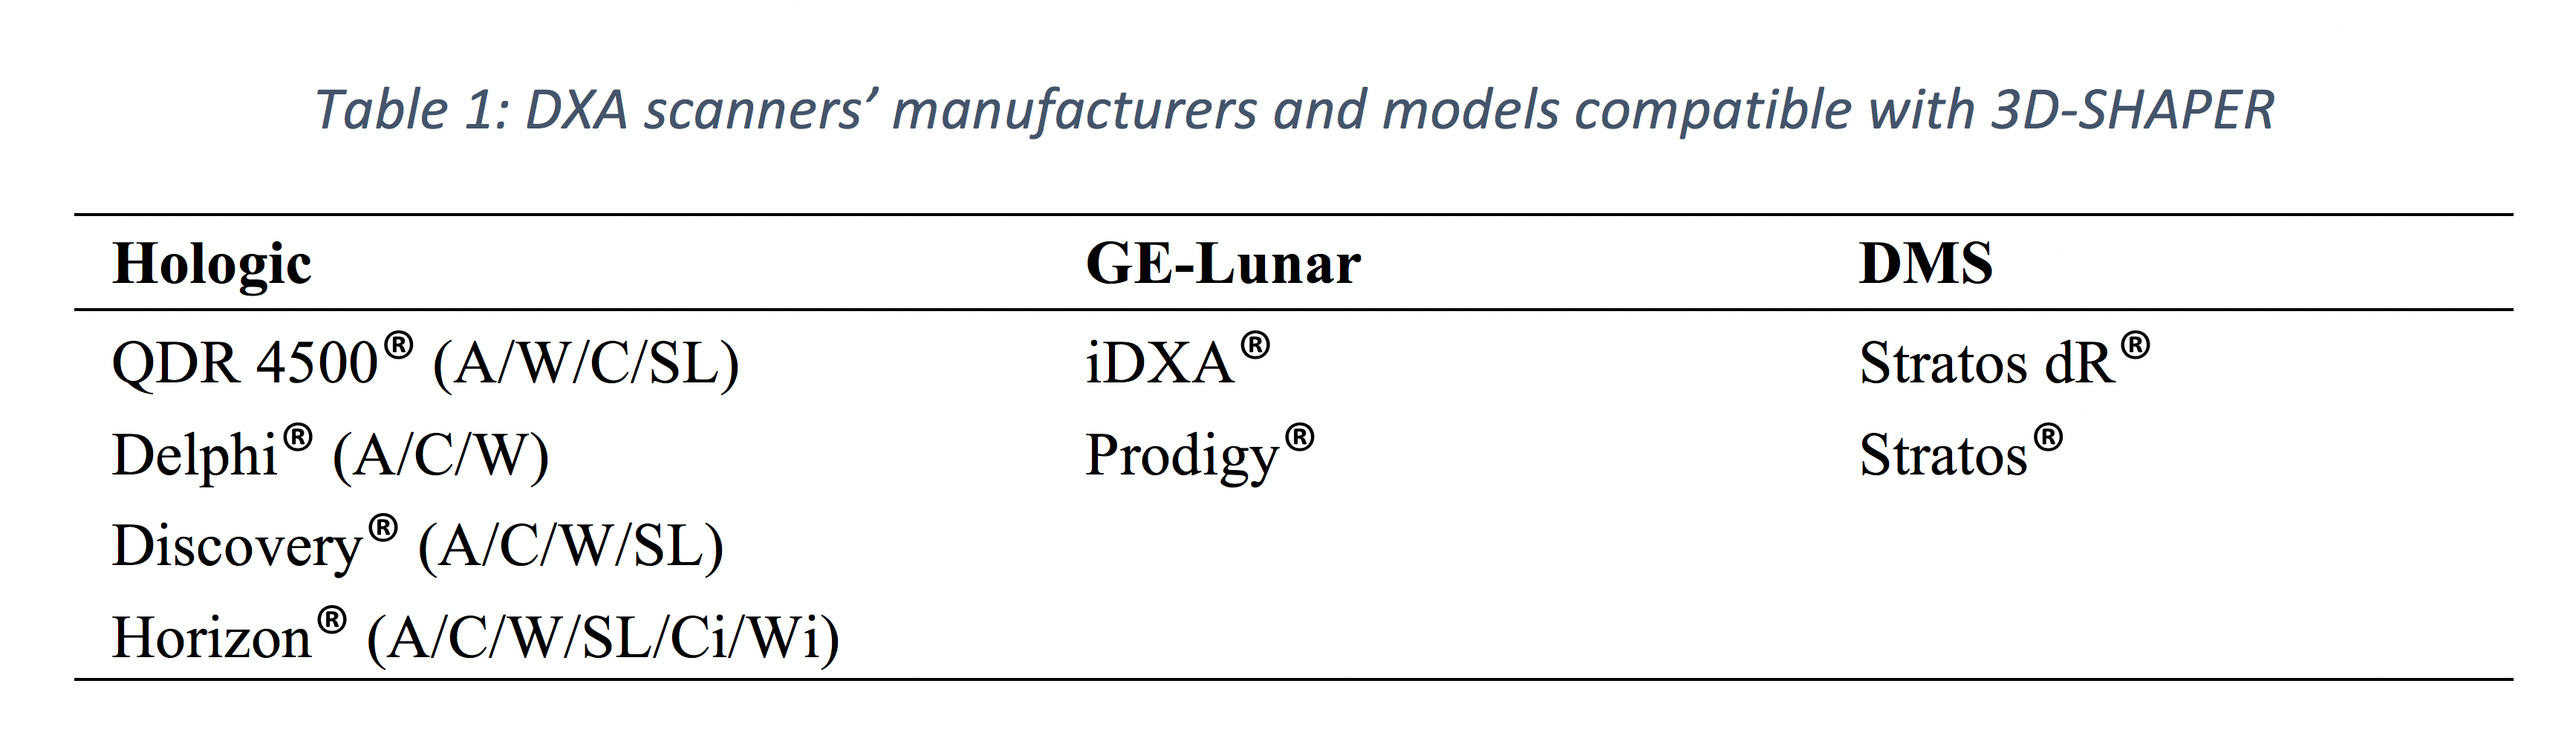 DXA scanner compatibility